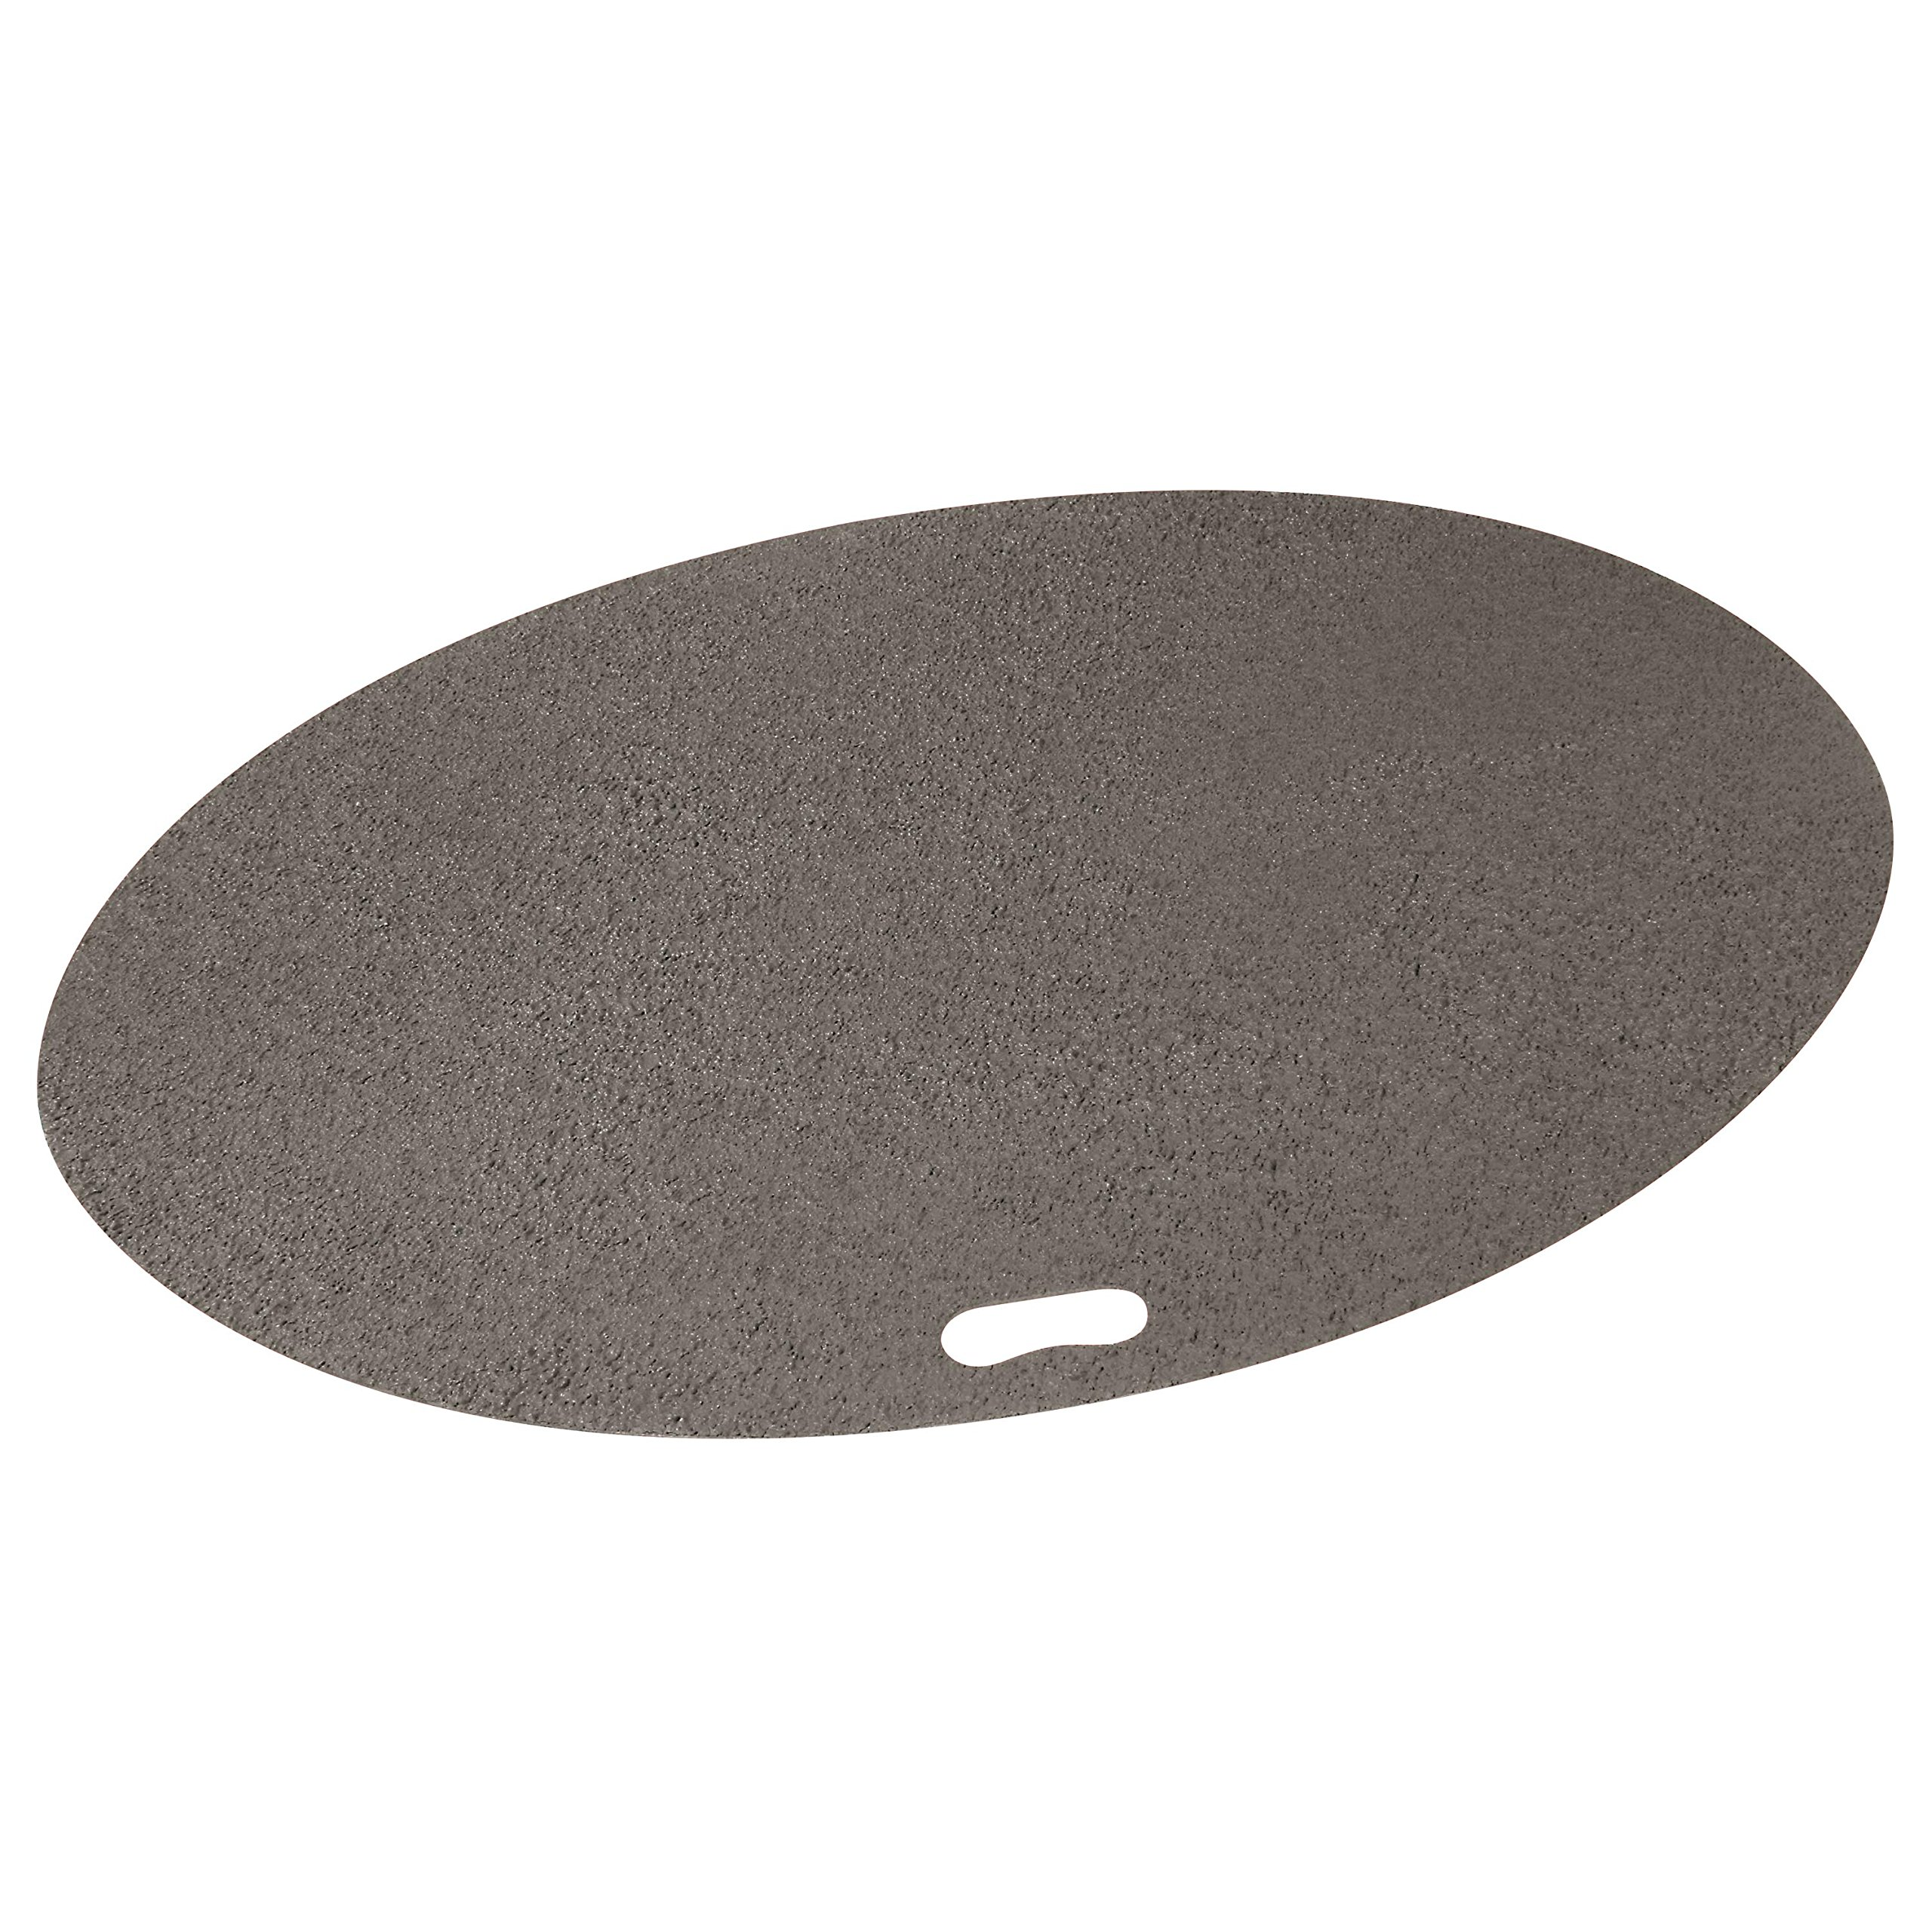 The Original Grill Pad Gray Grill Pad, Oval